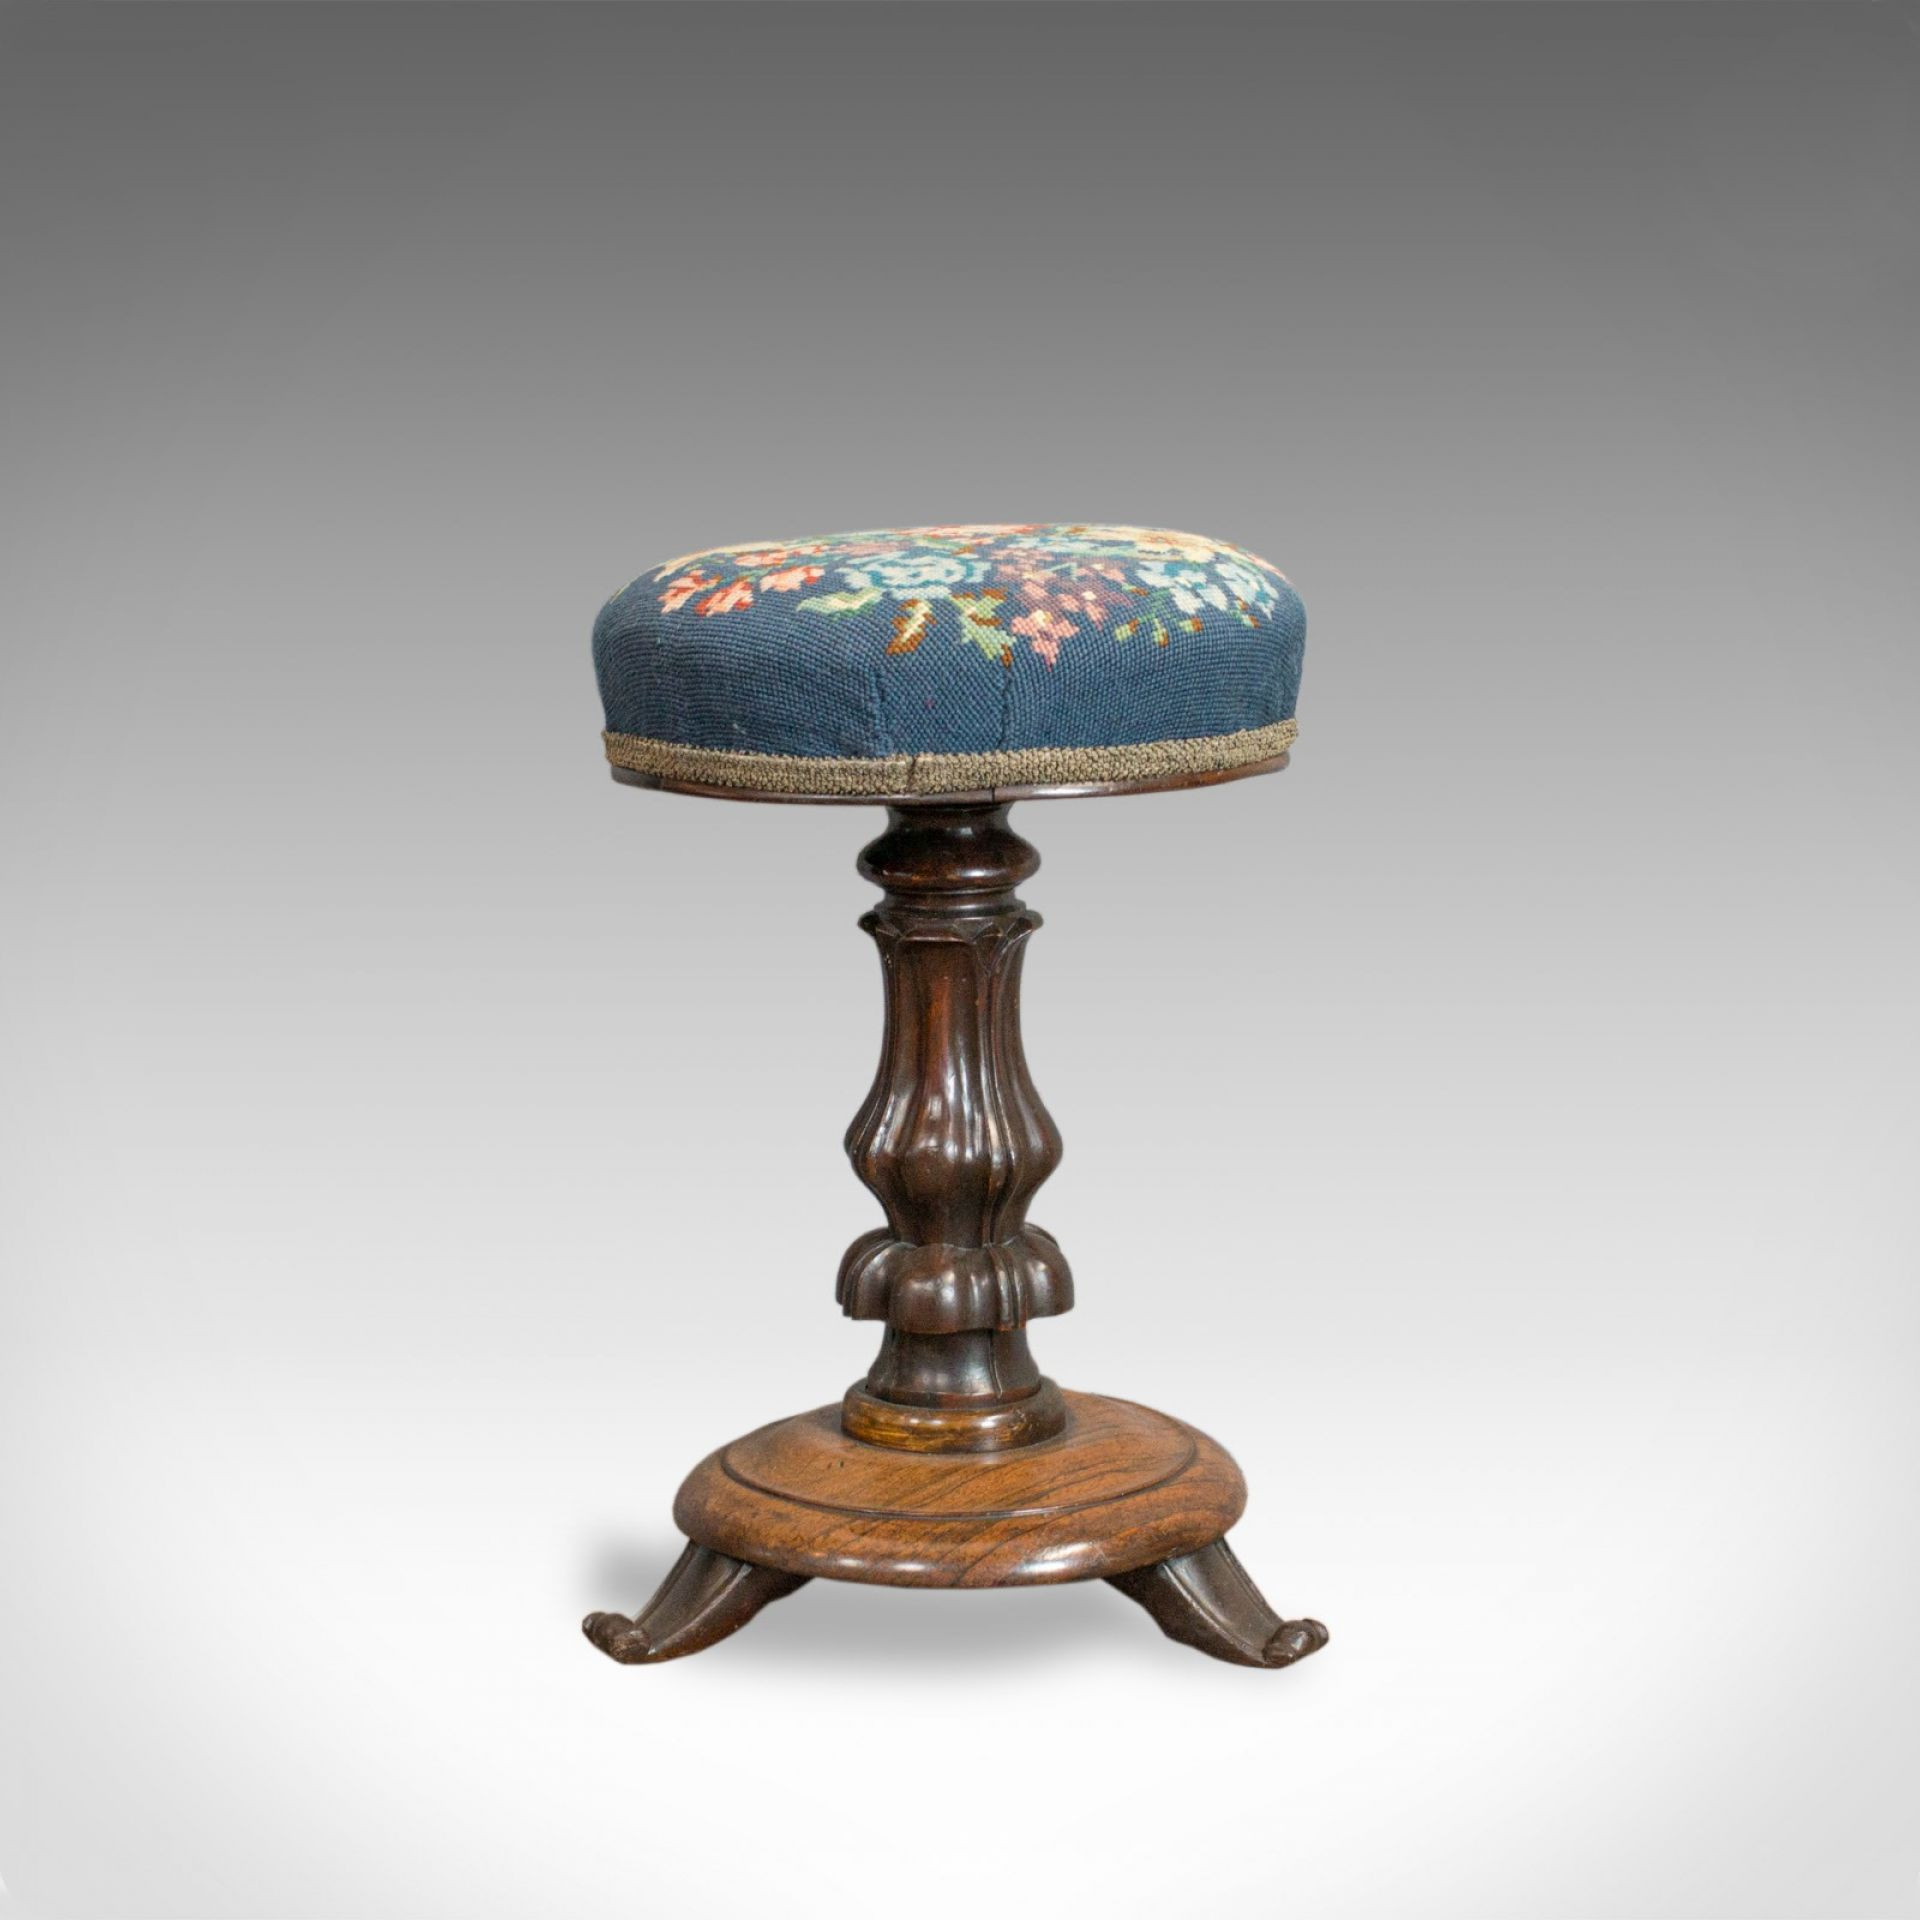 Antique Piano Stool, Rosewood, Music, Regency, Adjustable, Needlepoint, c.1830